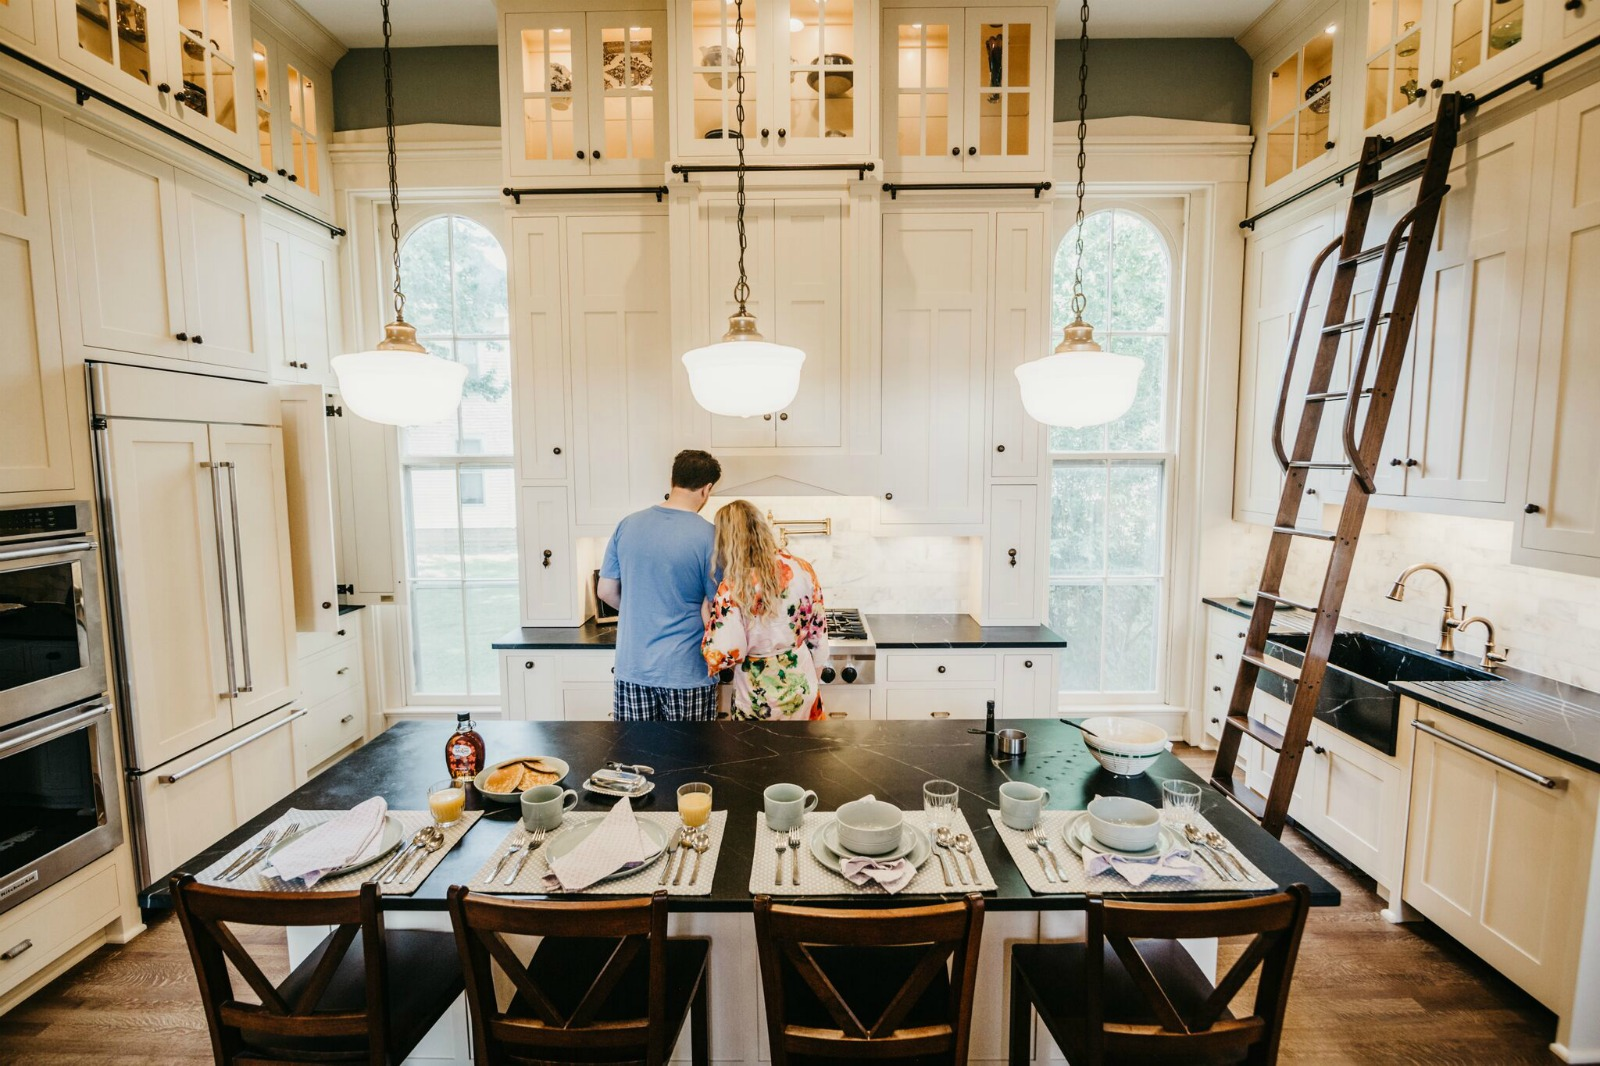 Lessons Learned from a Kitchen Remodel - Rachel Teodoro